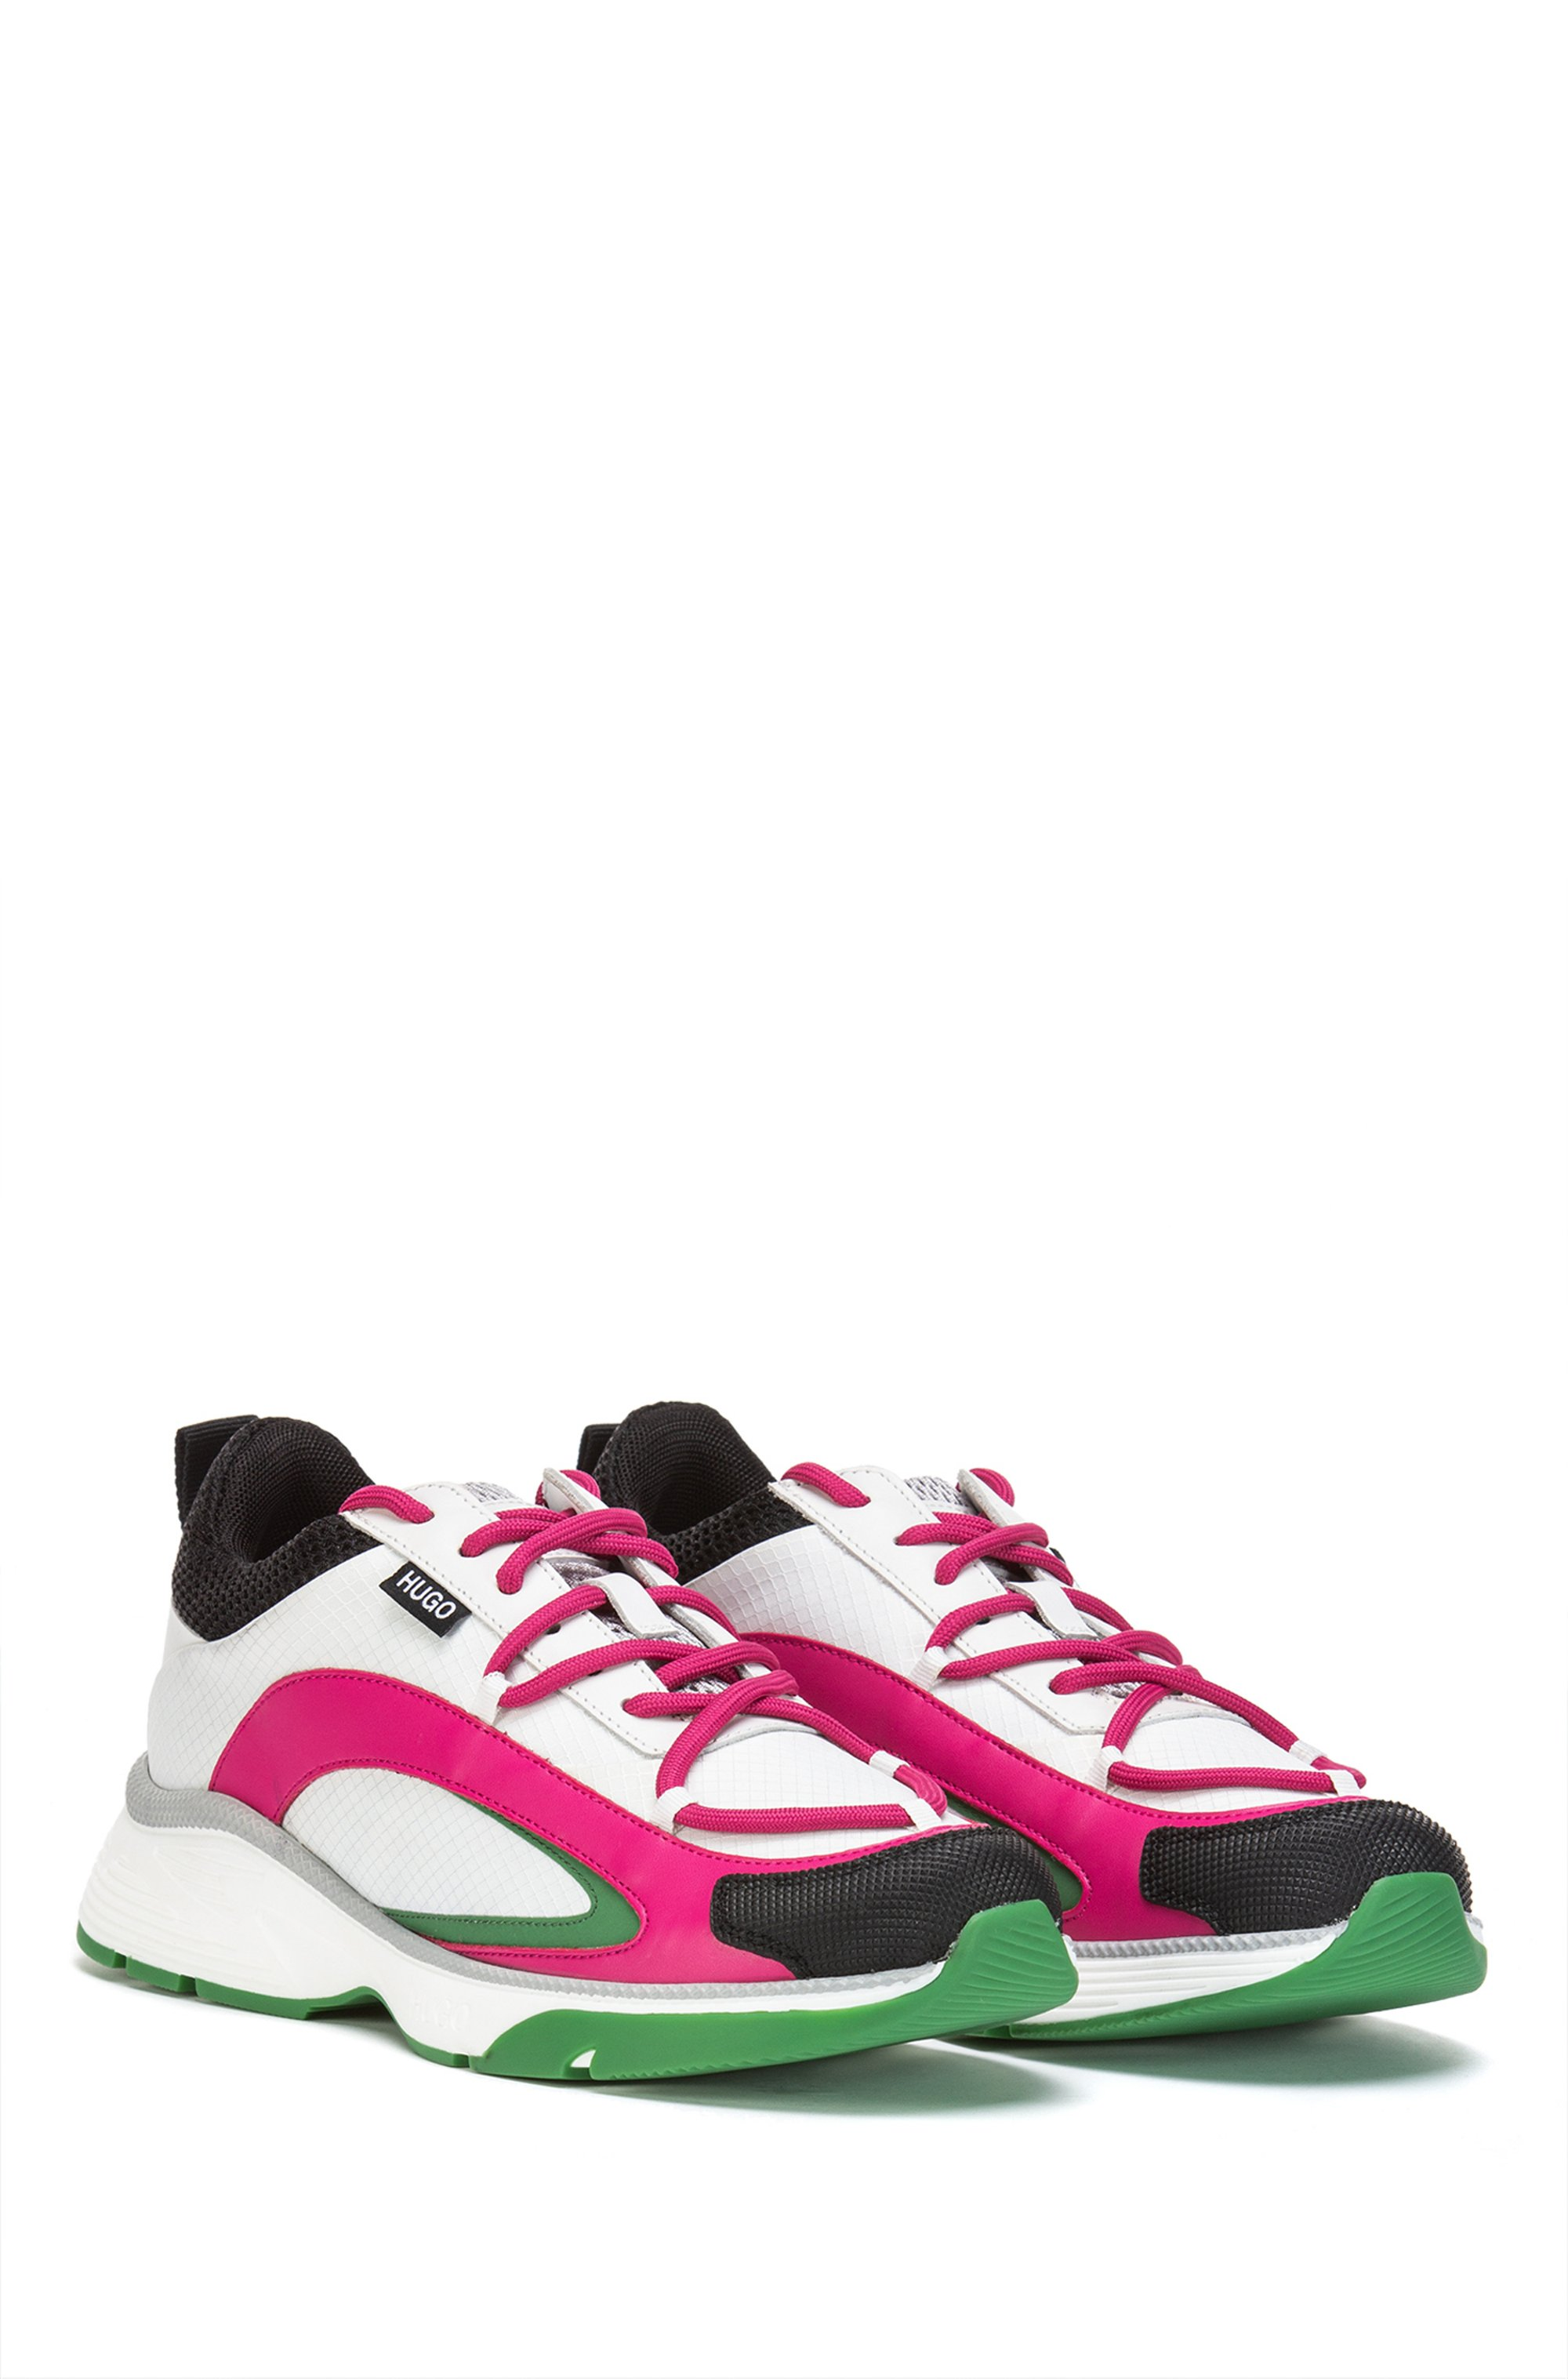 Pop-colour running-style trainers in mixed materials